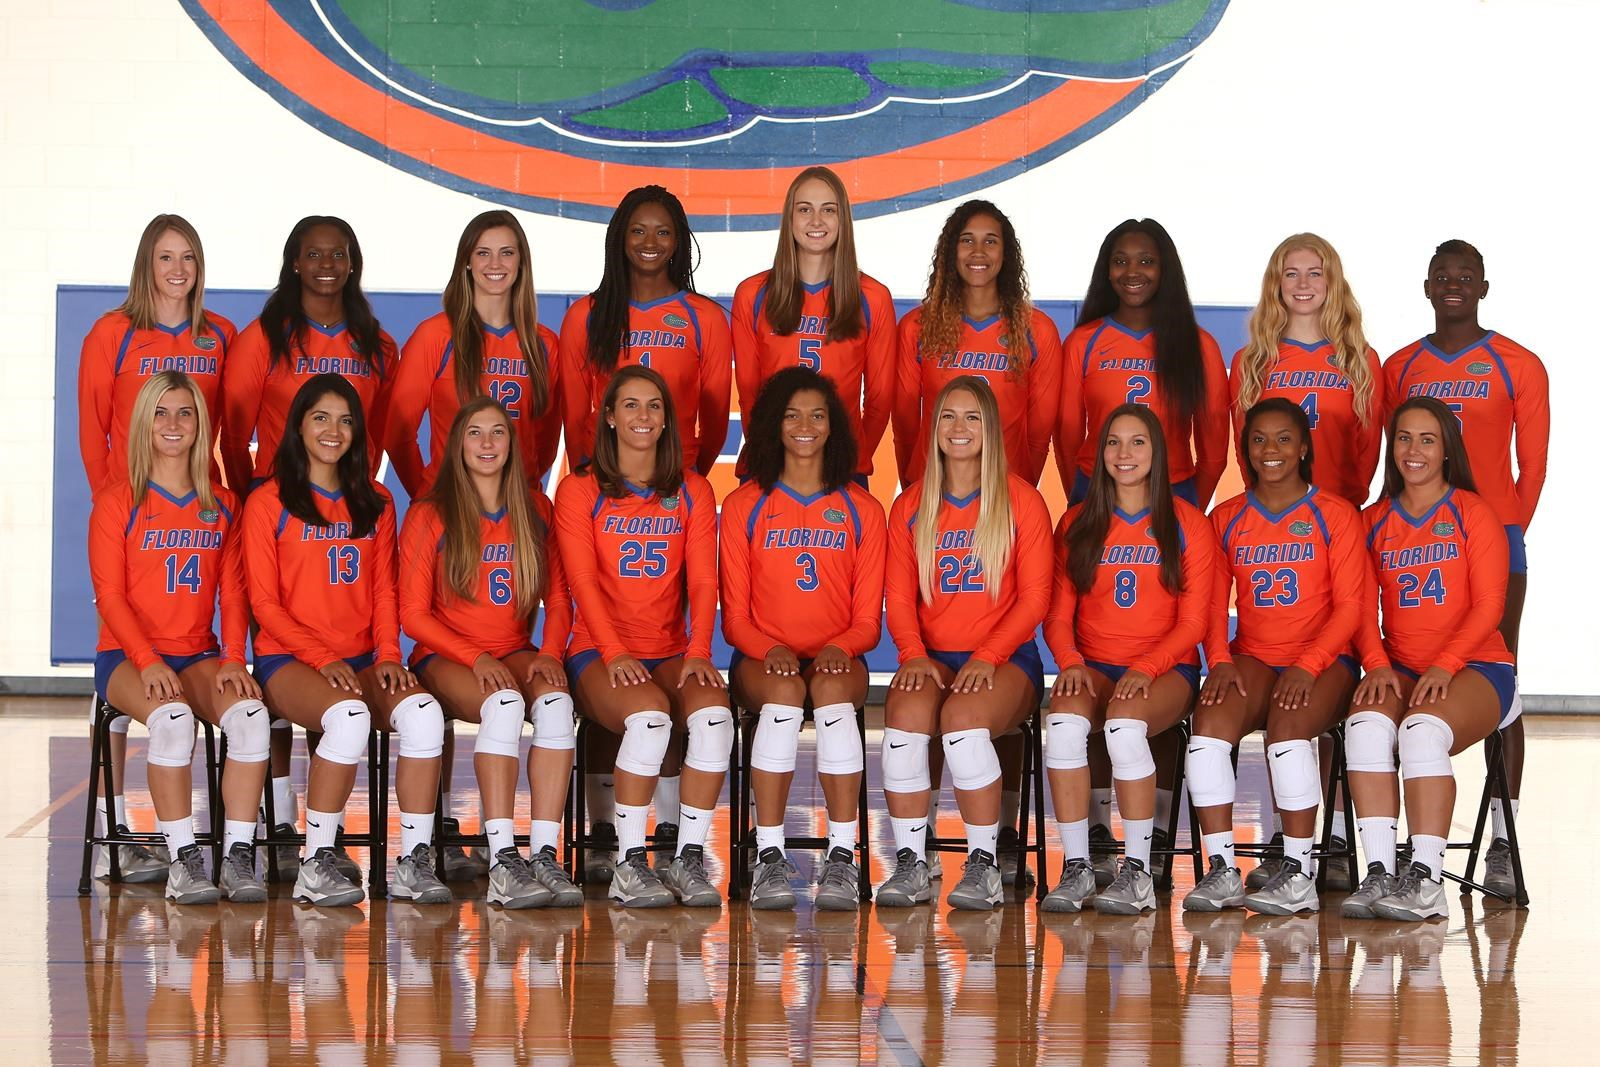 2016 Volleyball Roster Florida Gators